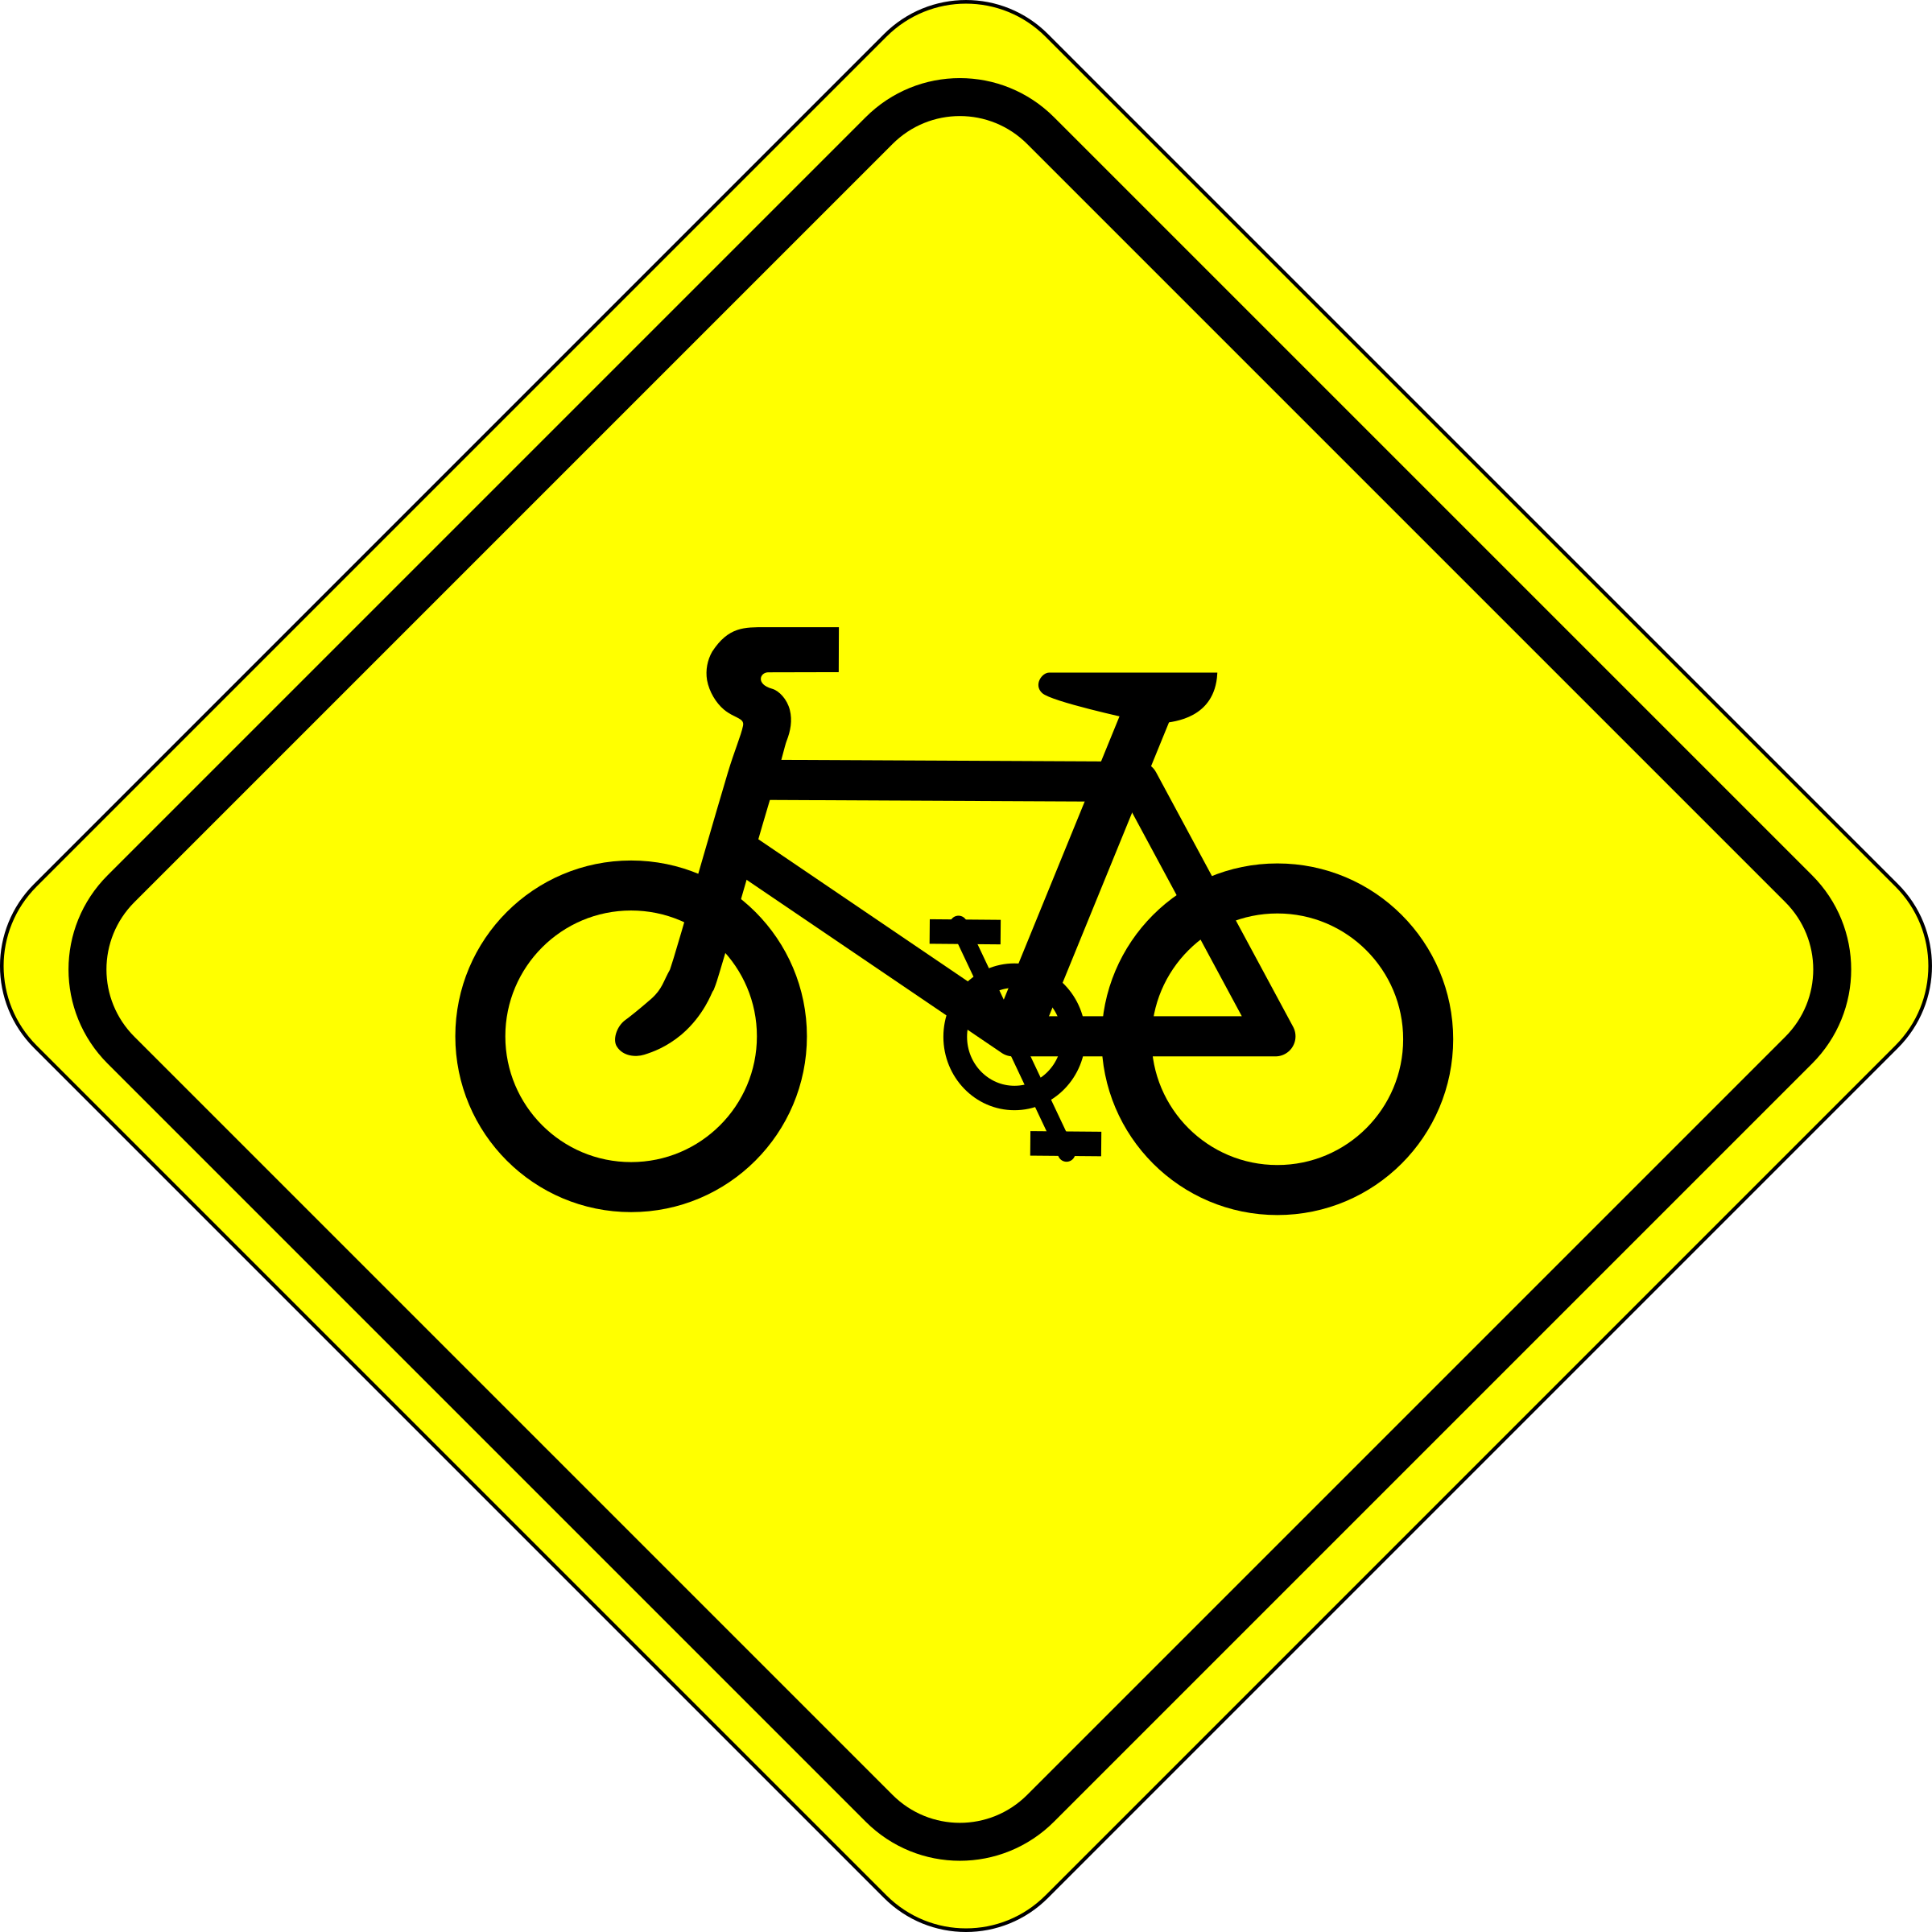 Roadsign watch for bicycles (With images) Bicycle sign